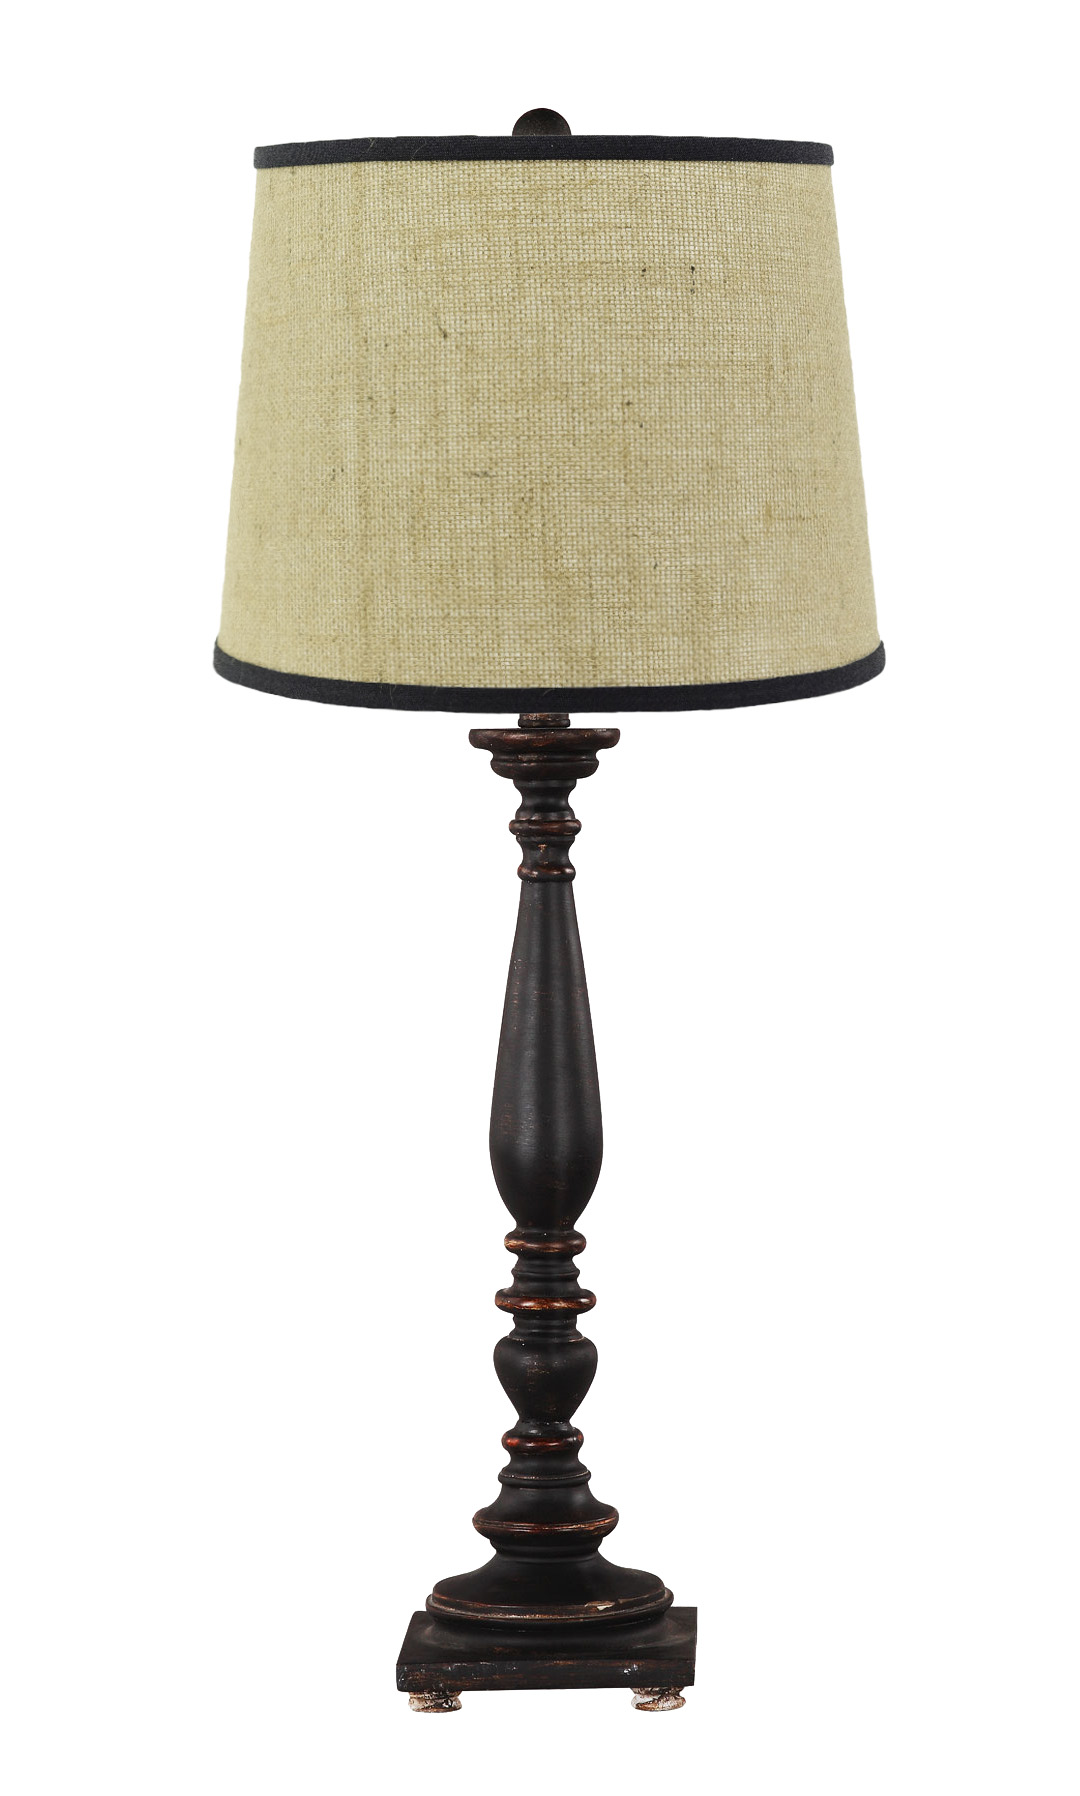 Liberty black table lamp with burlap shade l2175bk u1 for Lamp shades austin